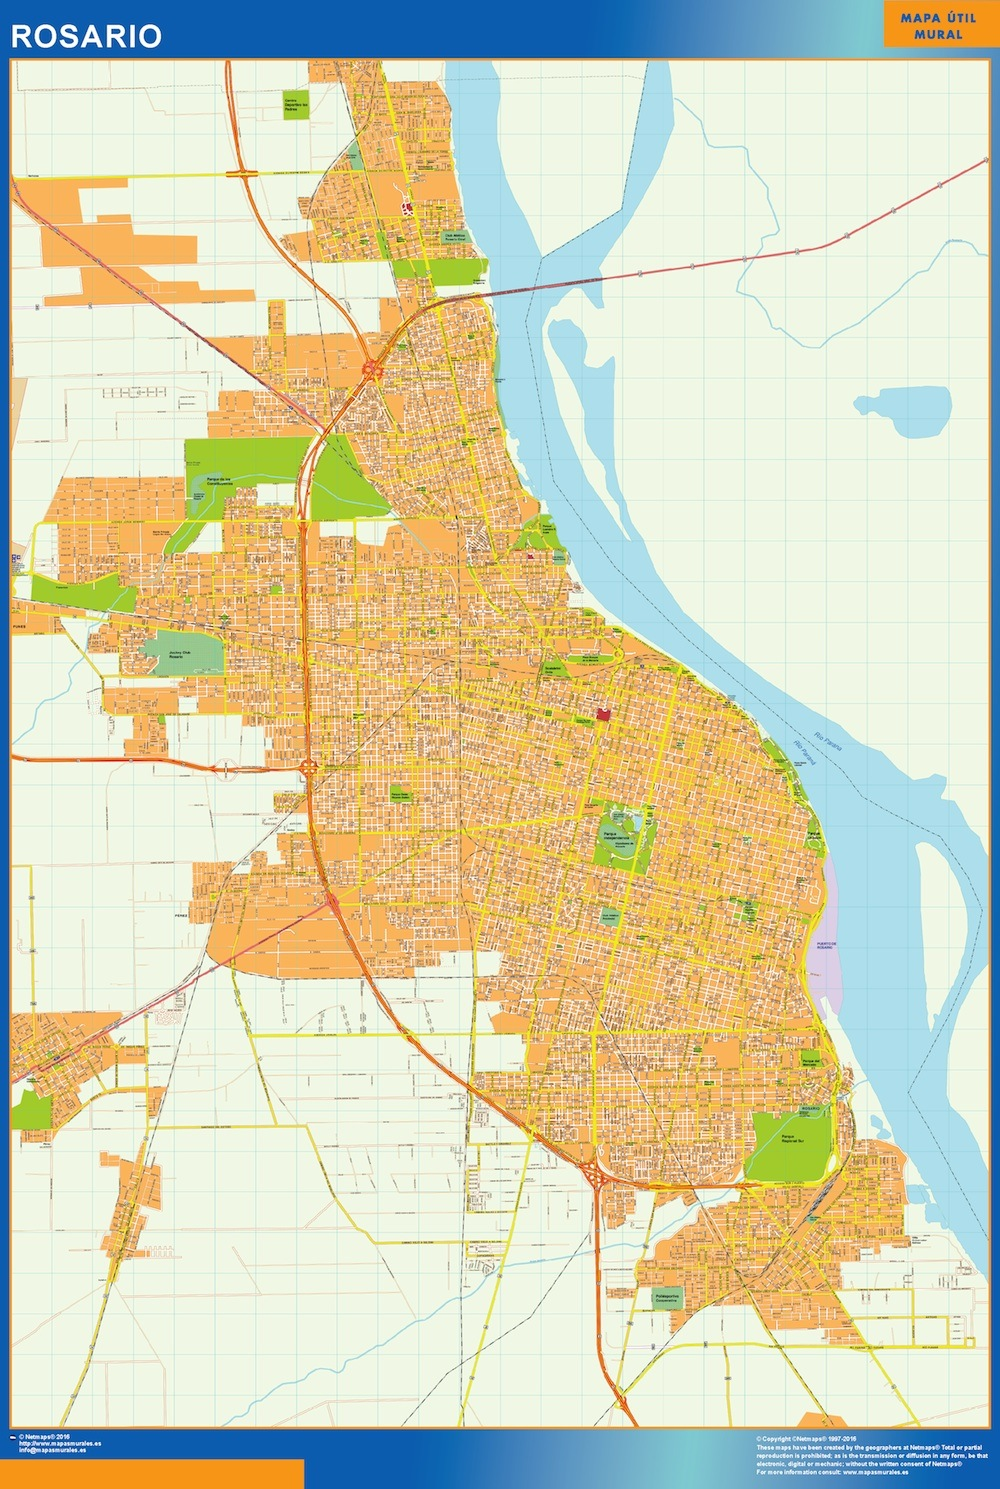 World Wall Maps Store Citymap Rosario Argentina maps More than 10